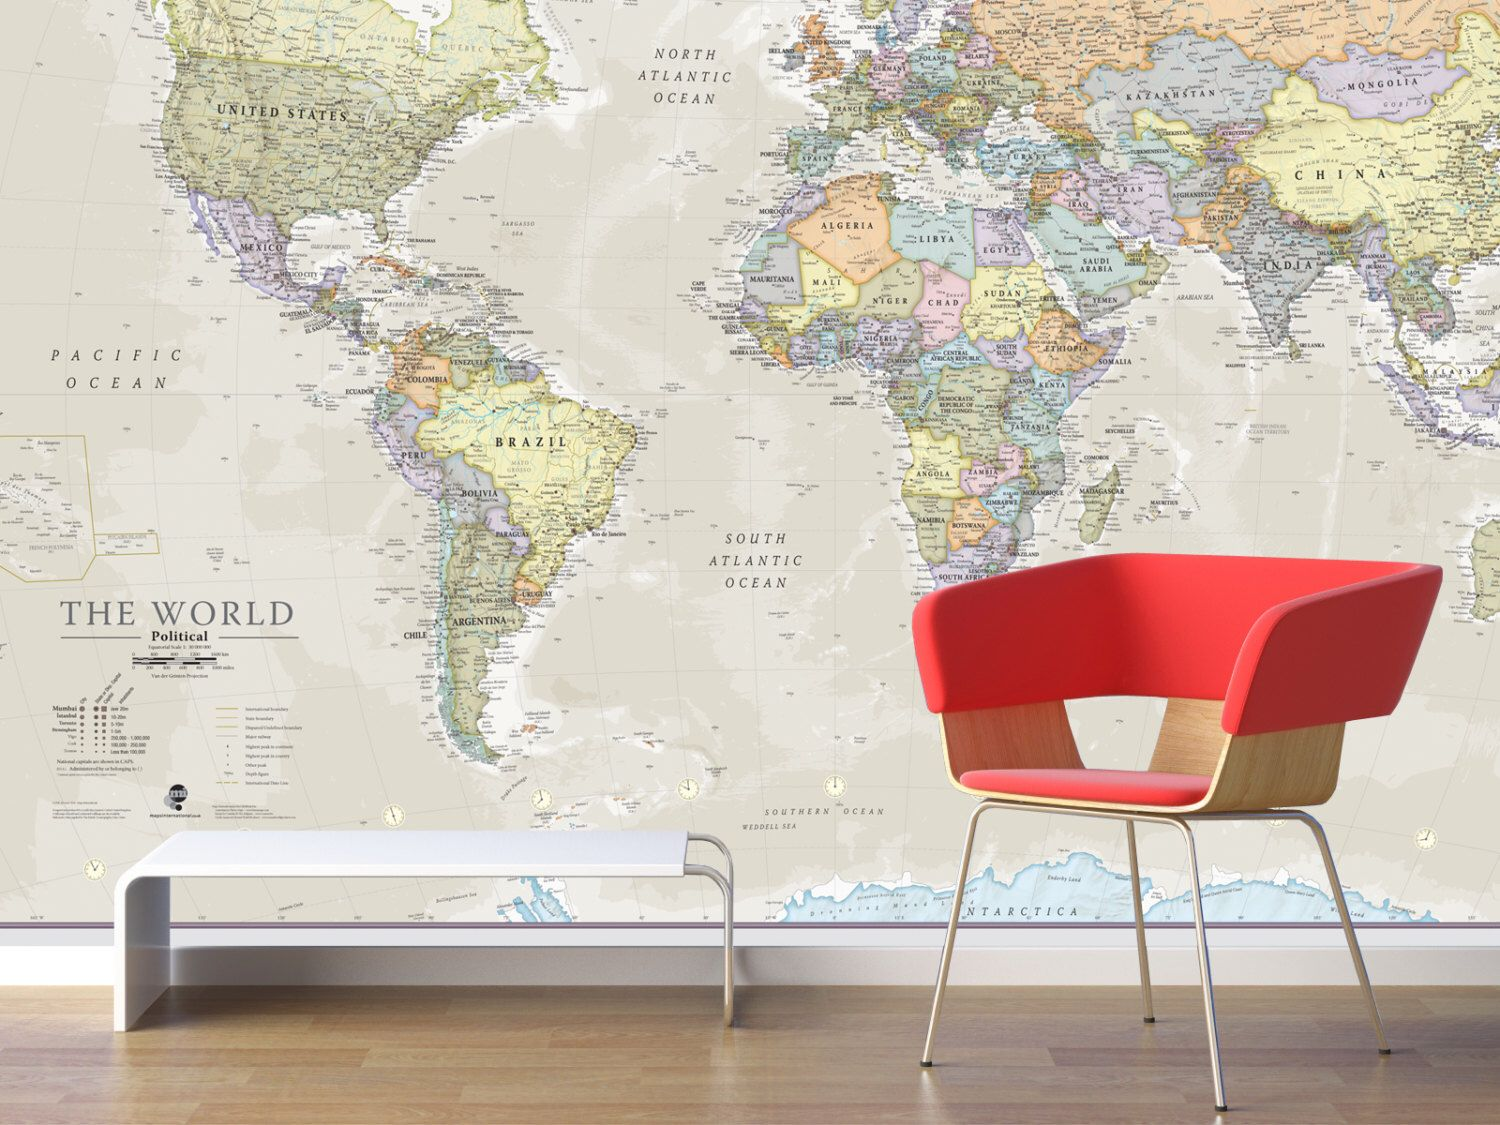 Giant world map mural classic home decor living room bedroom giant world map mural classic home decor living room bedroom world gumiabroncs Image collections